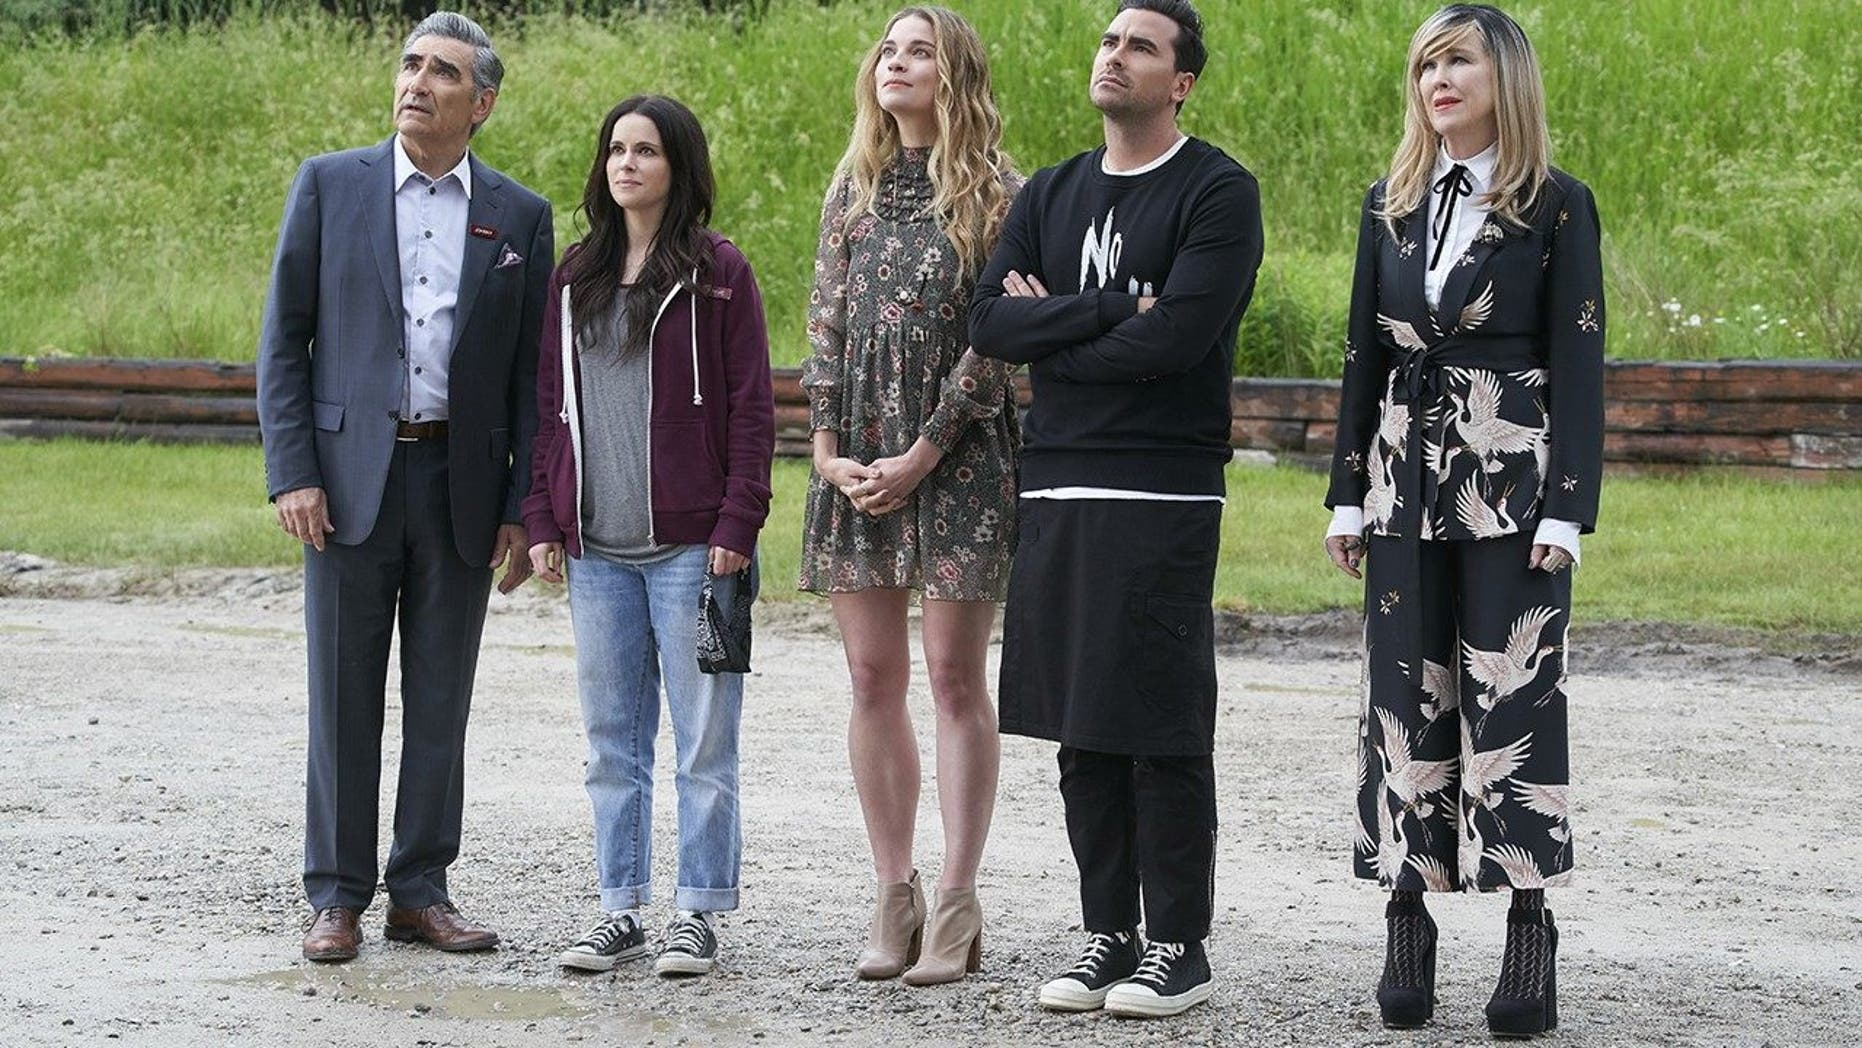 'Schitt's Creek' co-creators announced on Thursday that the series is ending after its sixth season